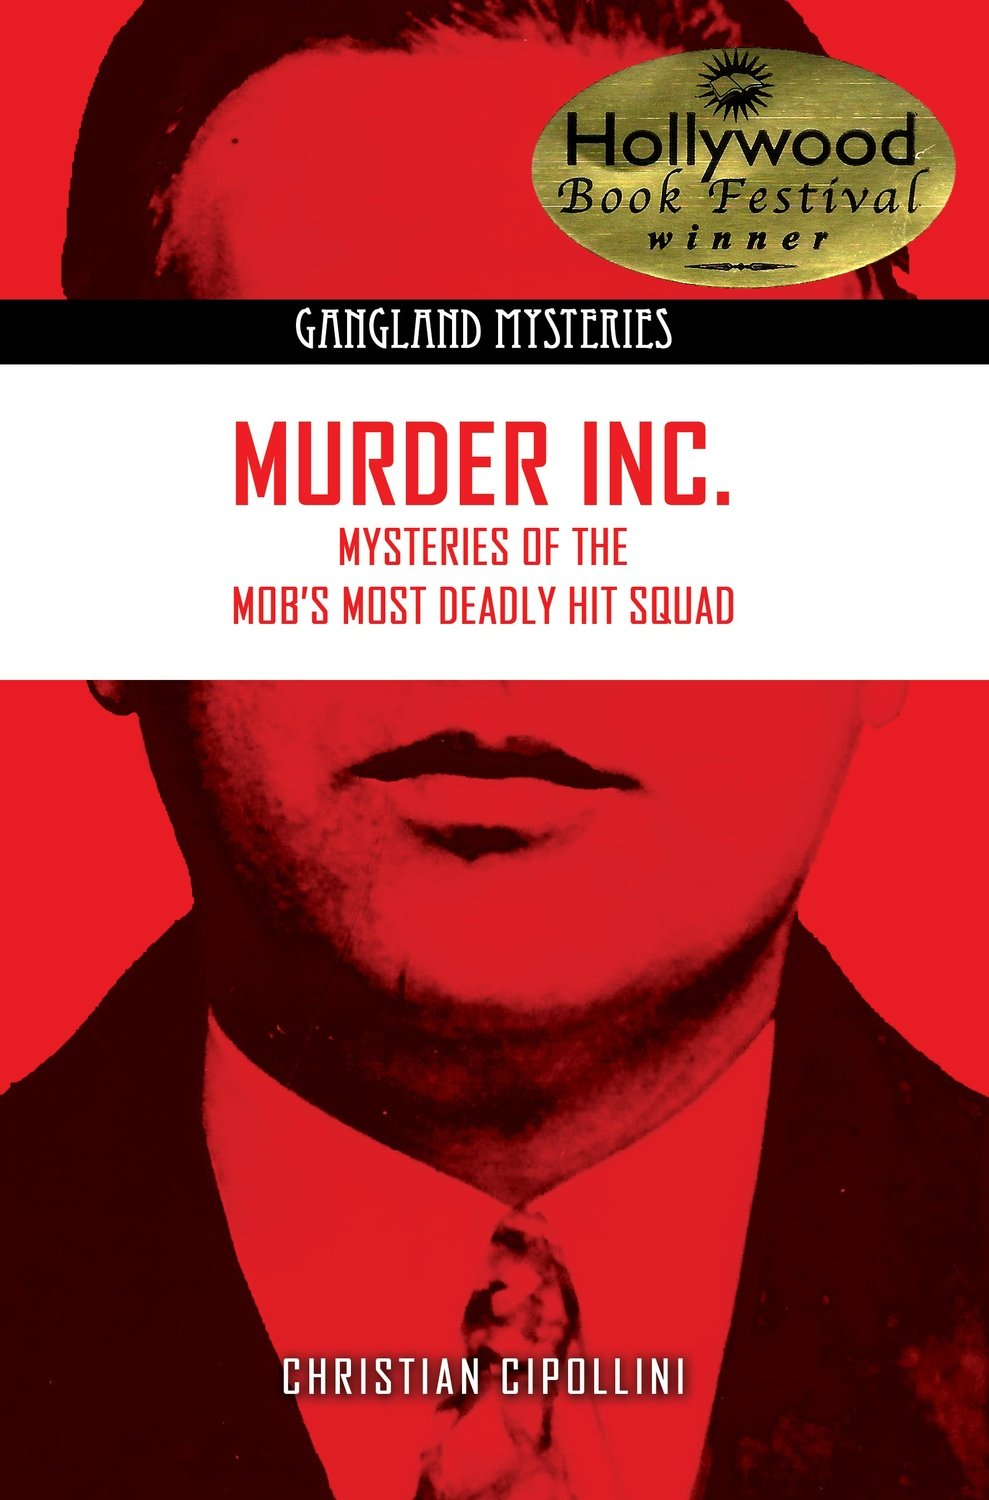 Murder Inc.: Mysteries of the Mob's Most Deadly Hit Squad - Author Signed Copy